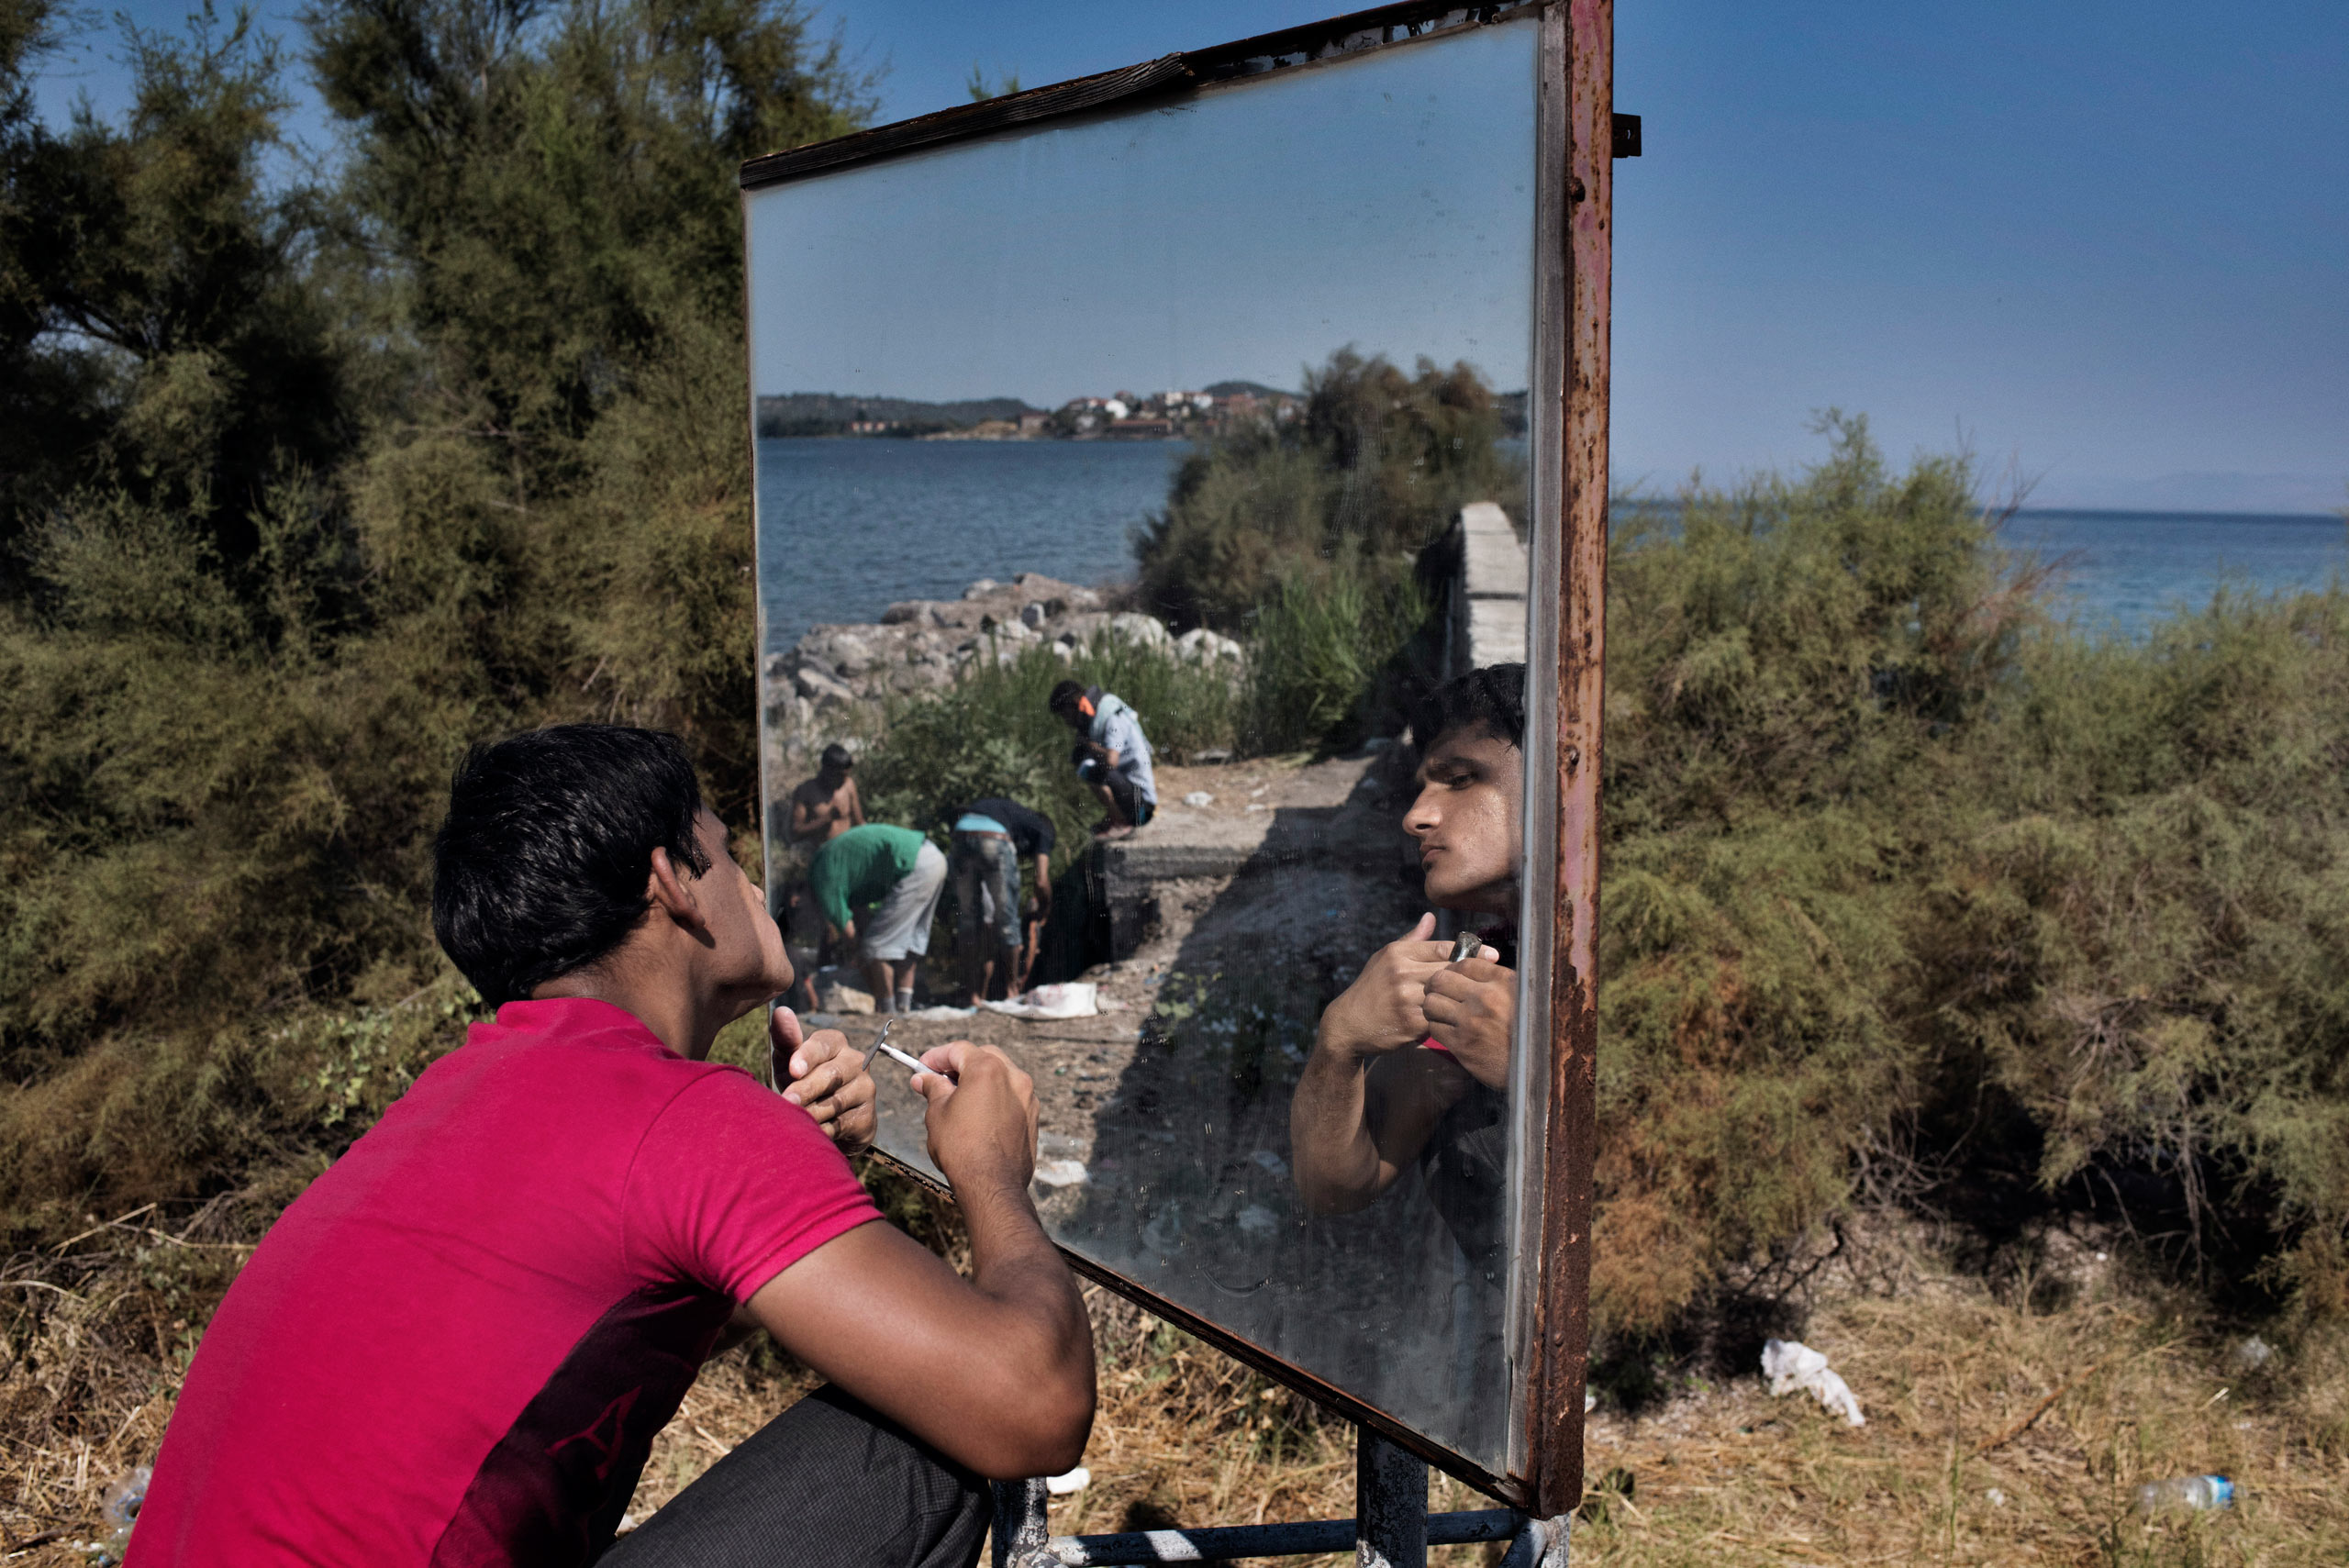 An Afghan migrant shaves with the help of a traffic mirror on the side of a highway on the  Greek island of Lesbos, Greece, Sept. 5, 2015.